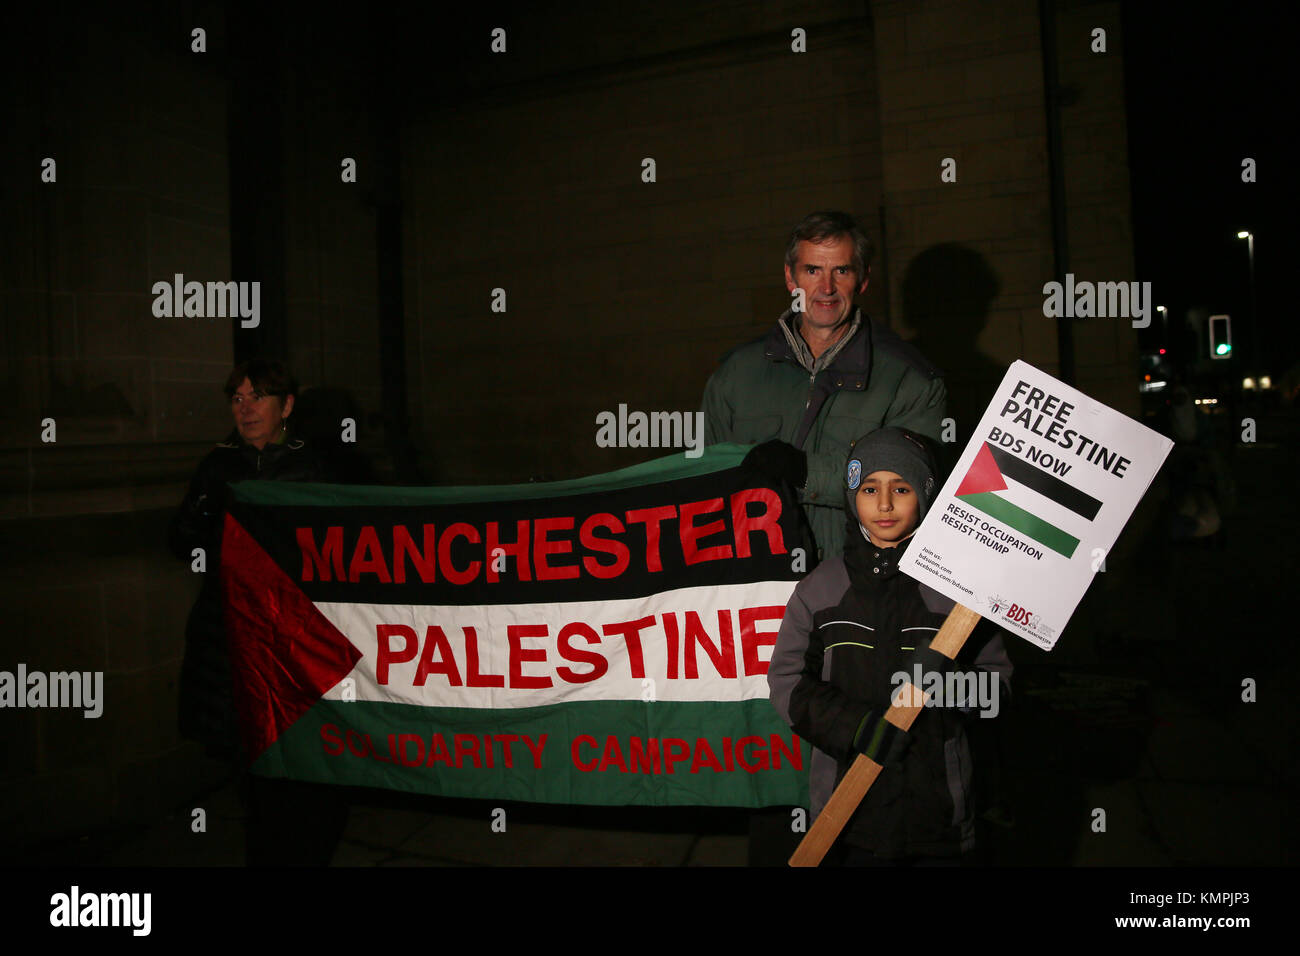 Manchester, UK. 8th December, 2017. Manchester Palestine Solidarity Campaign banner is held up outside the University - Stock Image